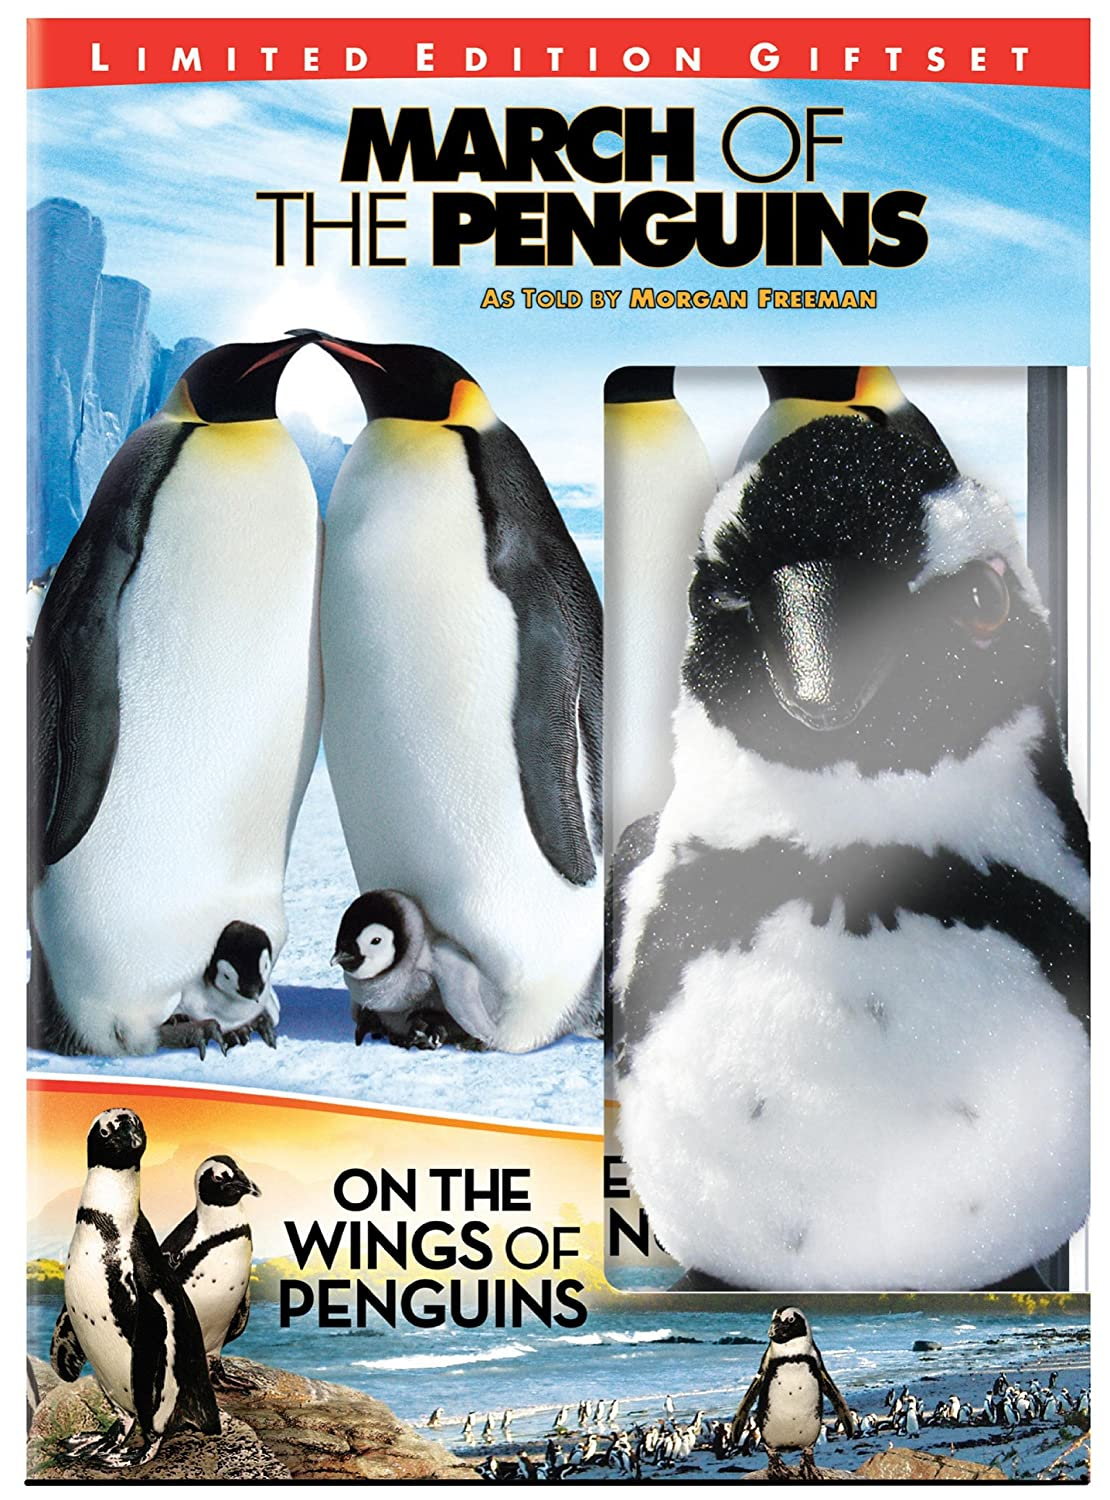 March of the Penguins Limited Edition Giftset (DVD)